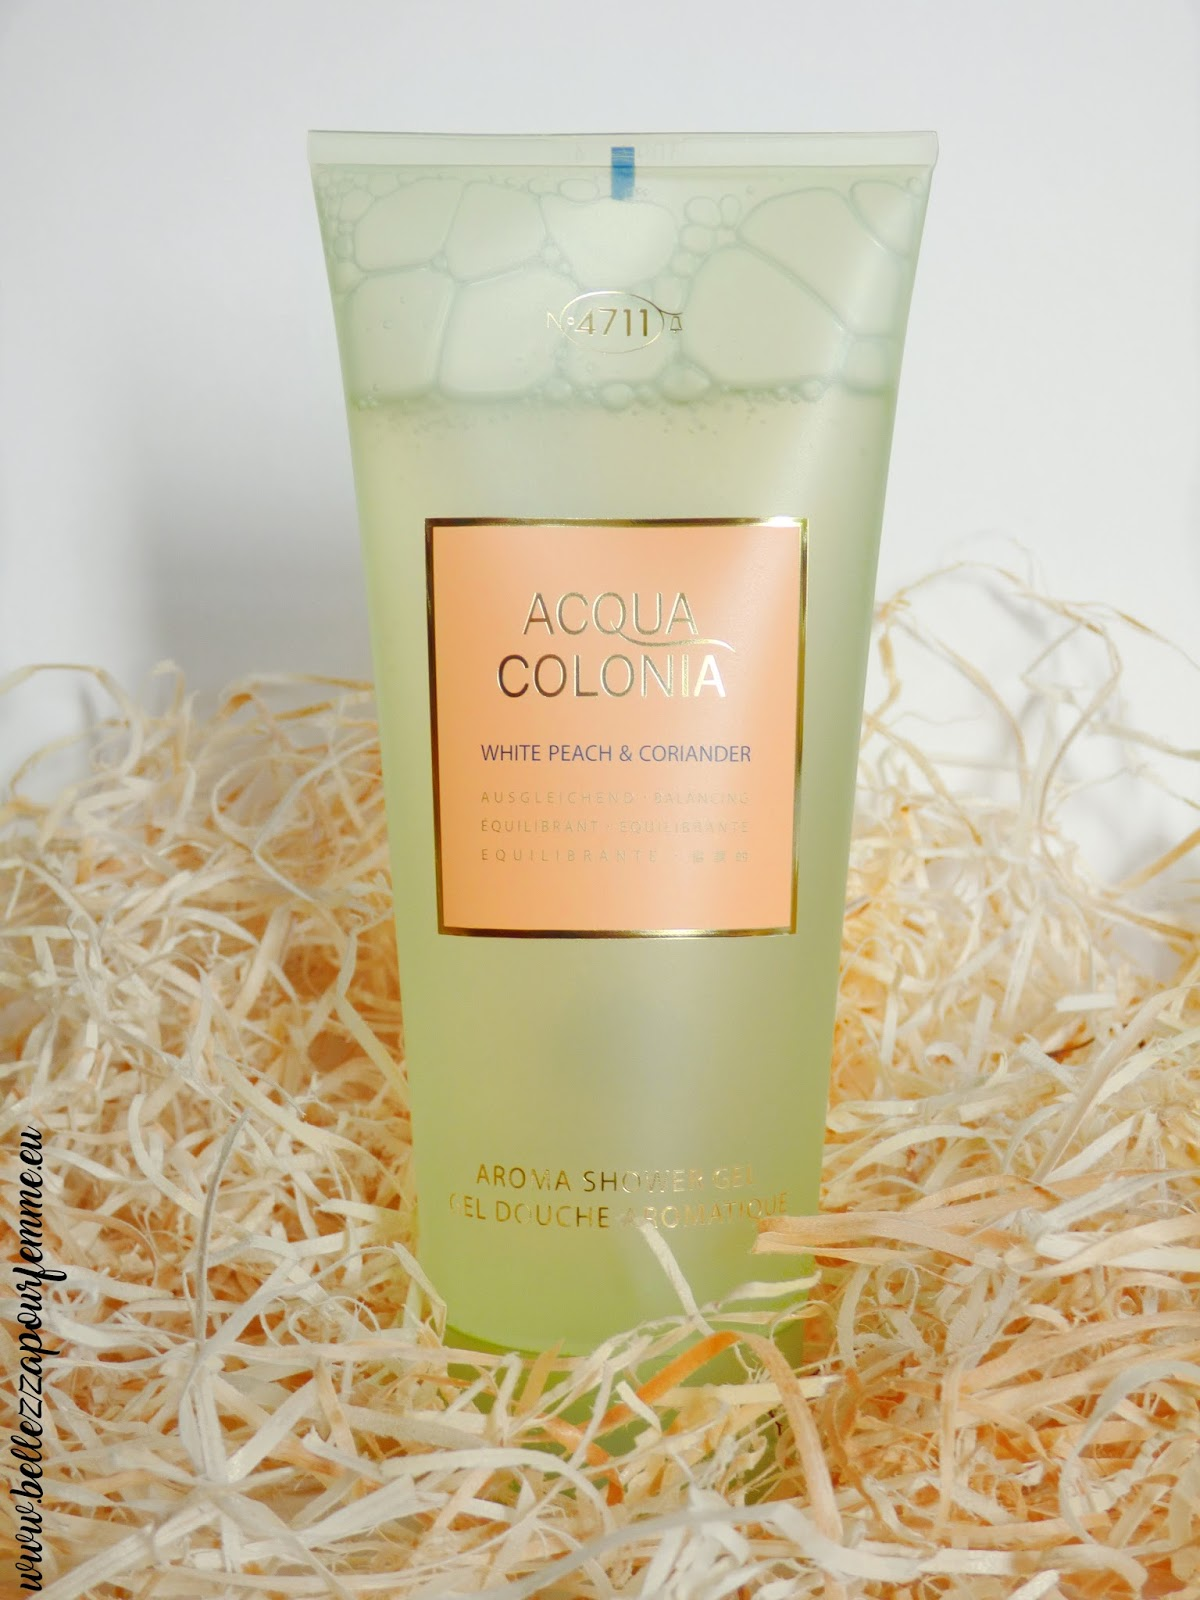 aroma shower gel Acqua Colonia N°4711